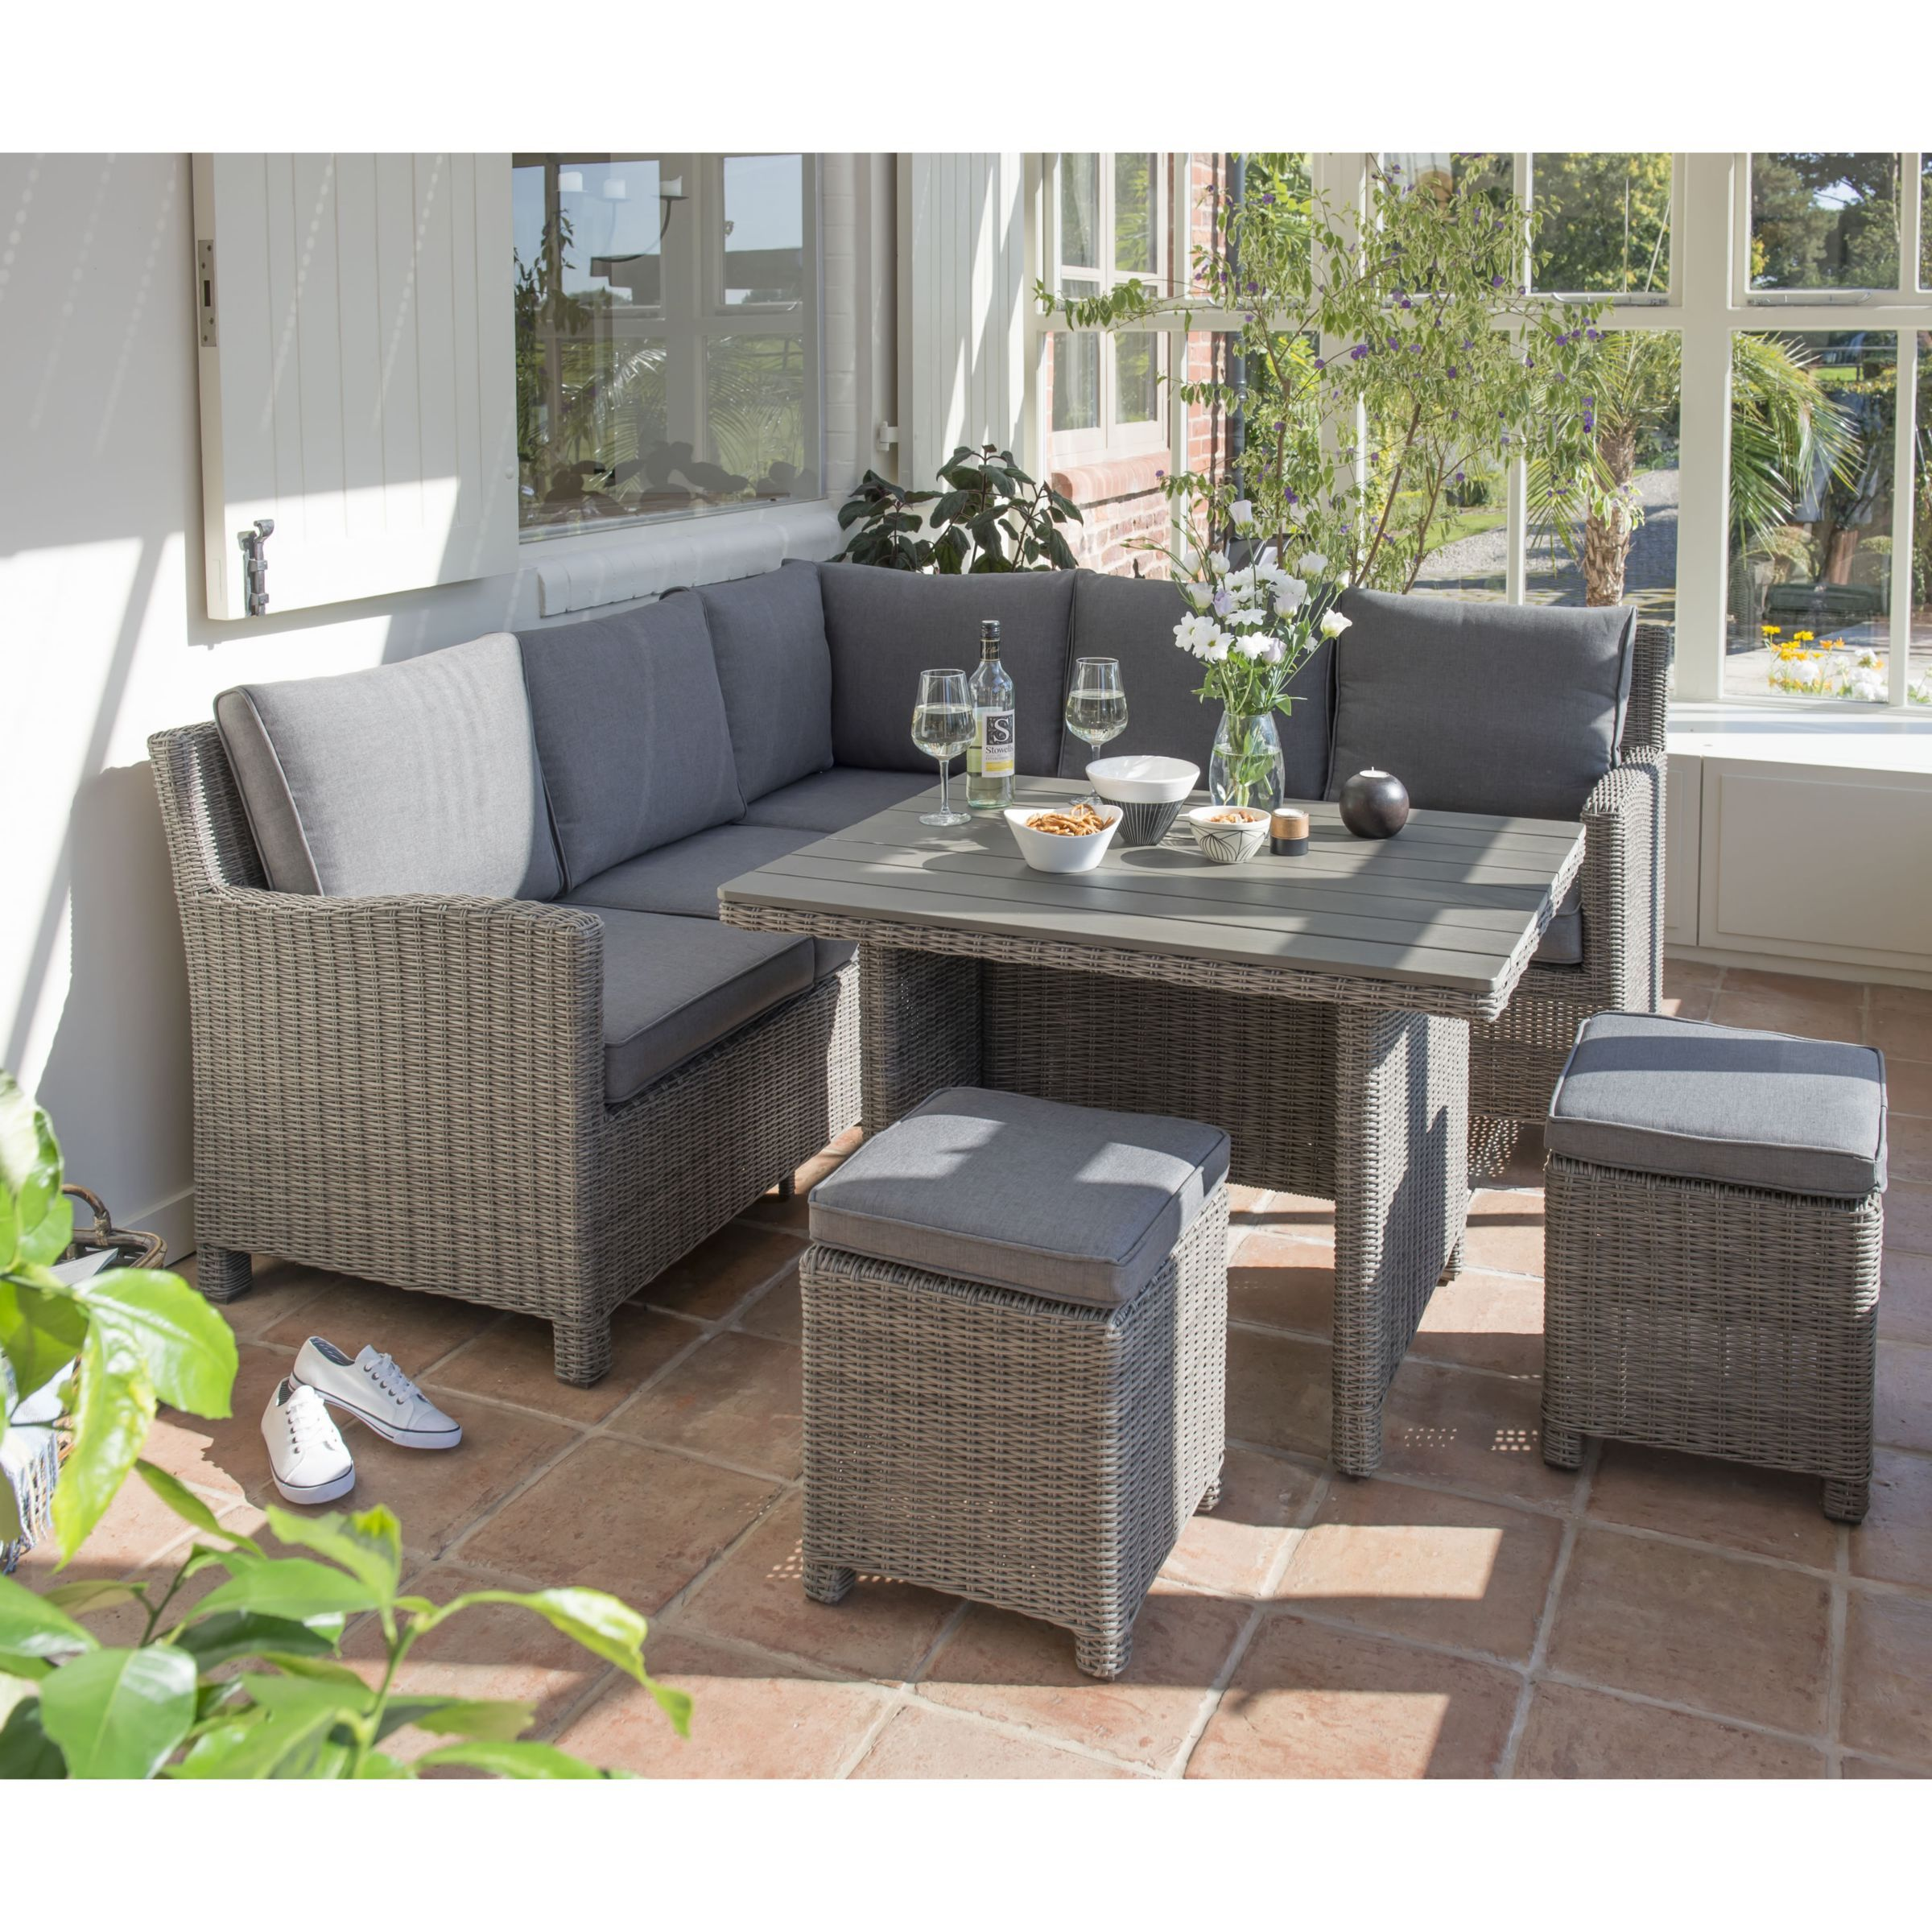 KETTLER Palma 8 Seater Garden Mini Corner Table and Chairs Set